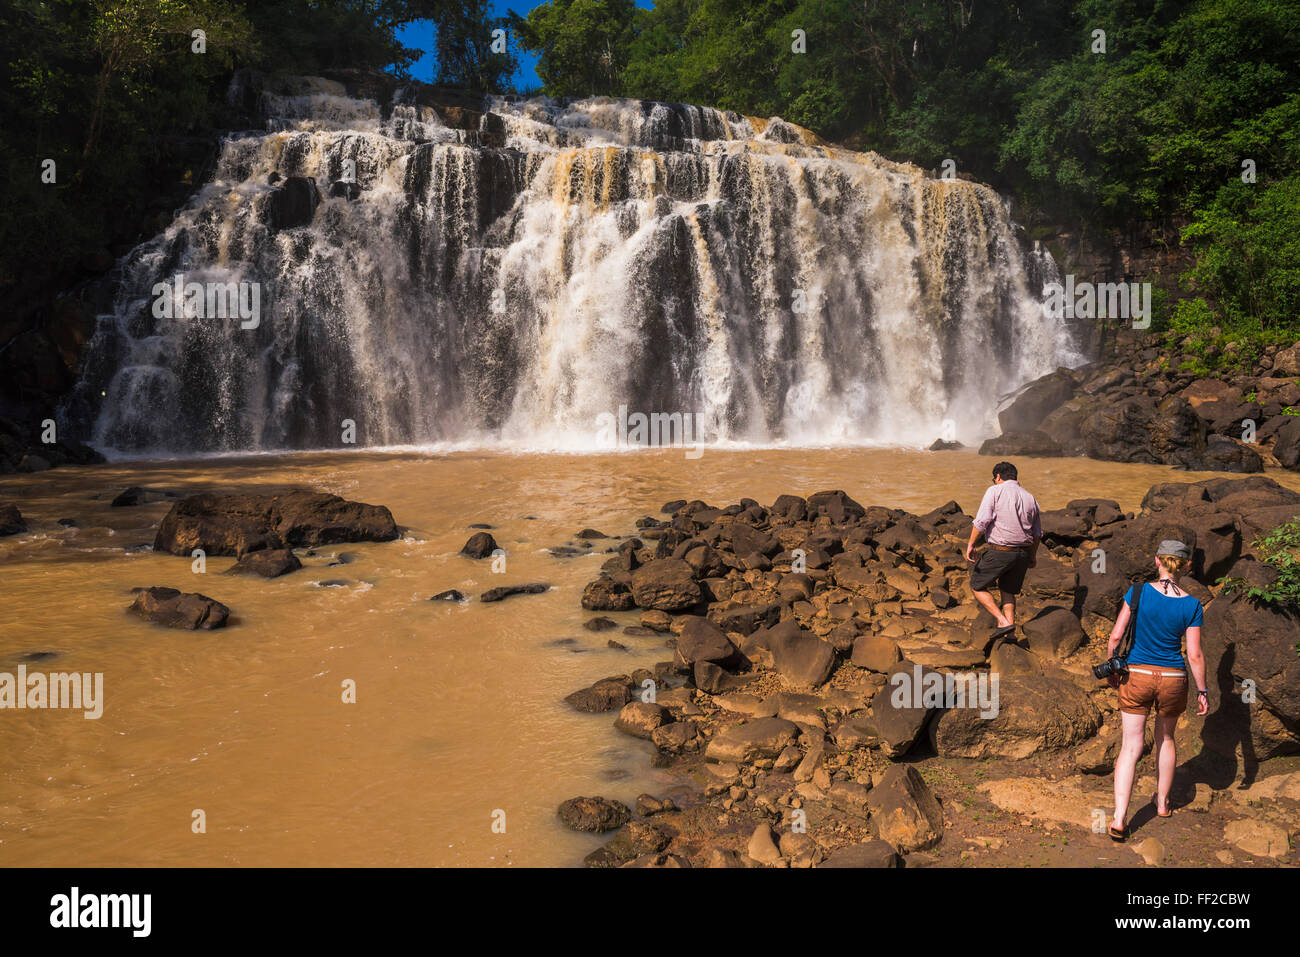 PeopRMe at waterfaRMRM connecting a tributary with the Rio Parana (Parana River), near Puerto Iguazu, Misiones Province, - Stock Image